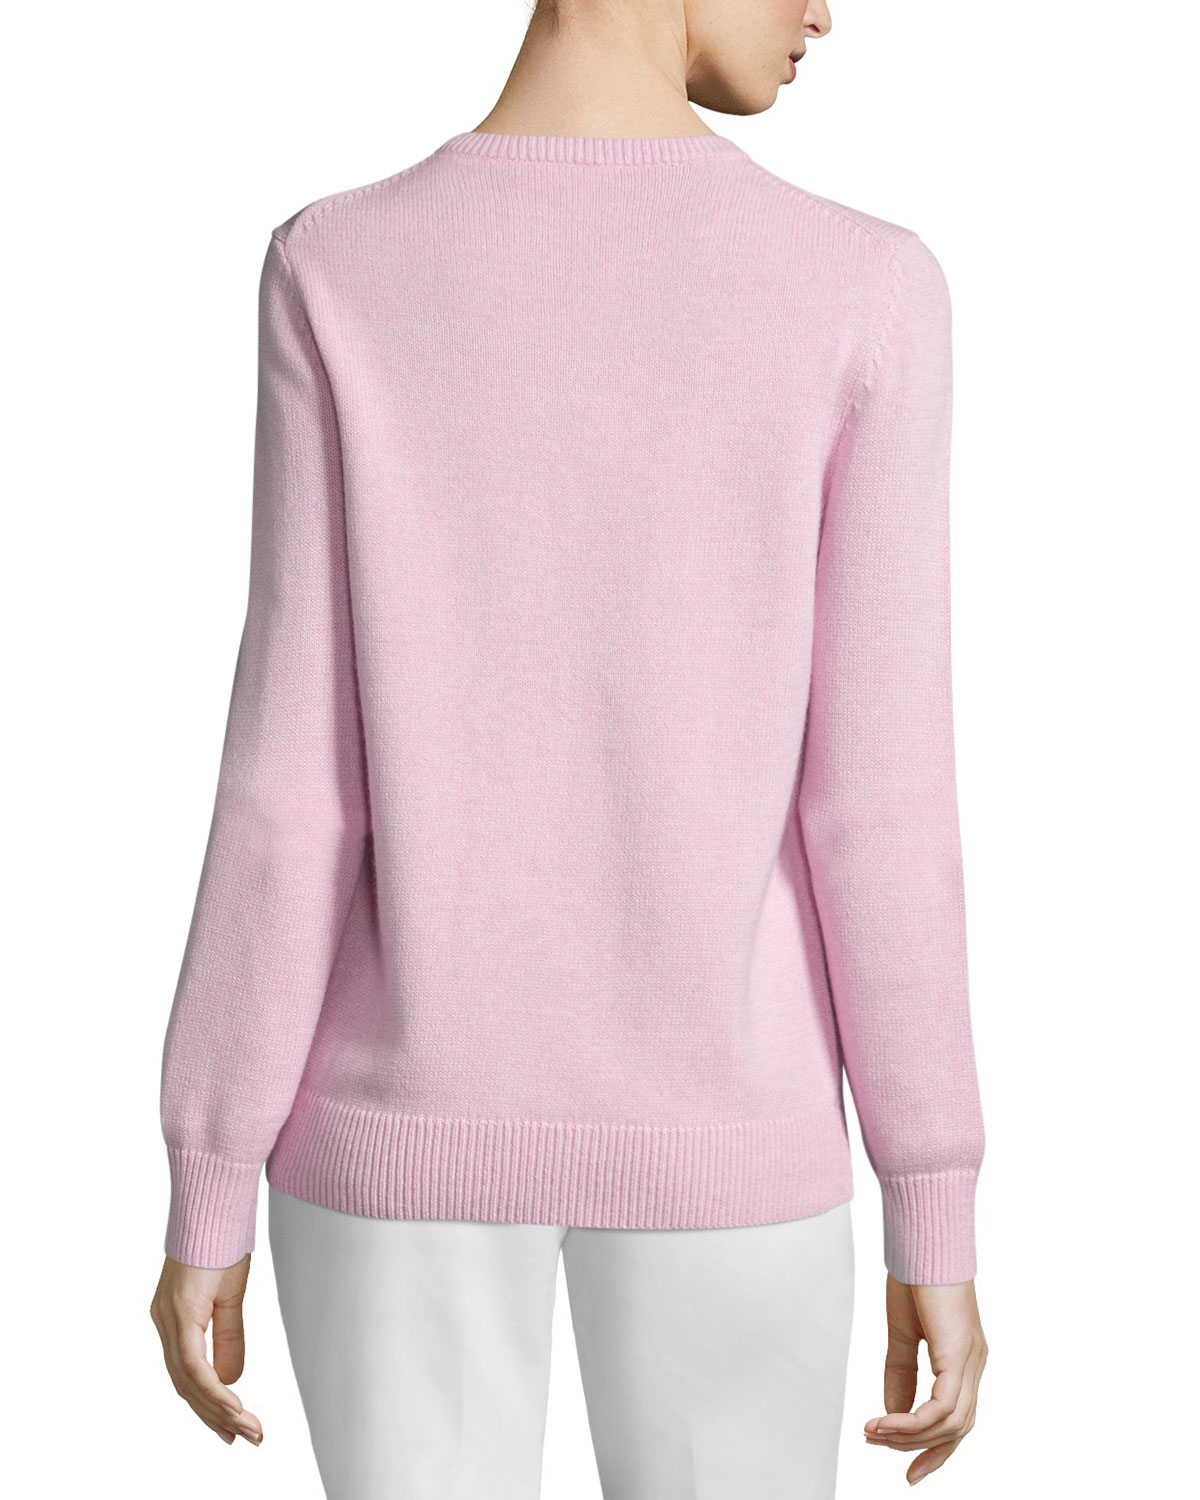 michael kors cotton cashmere long sleeve sweater in pink lyst. Black Bedroom Furniture Sets. Home Design Ideas